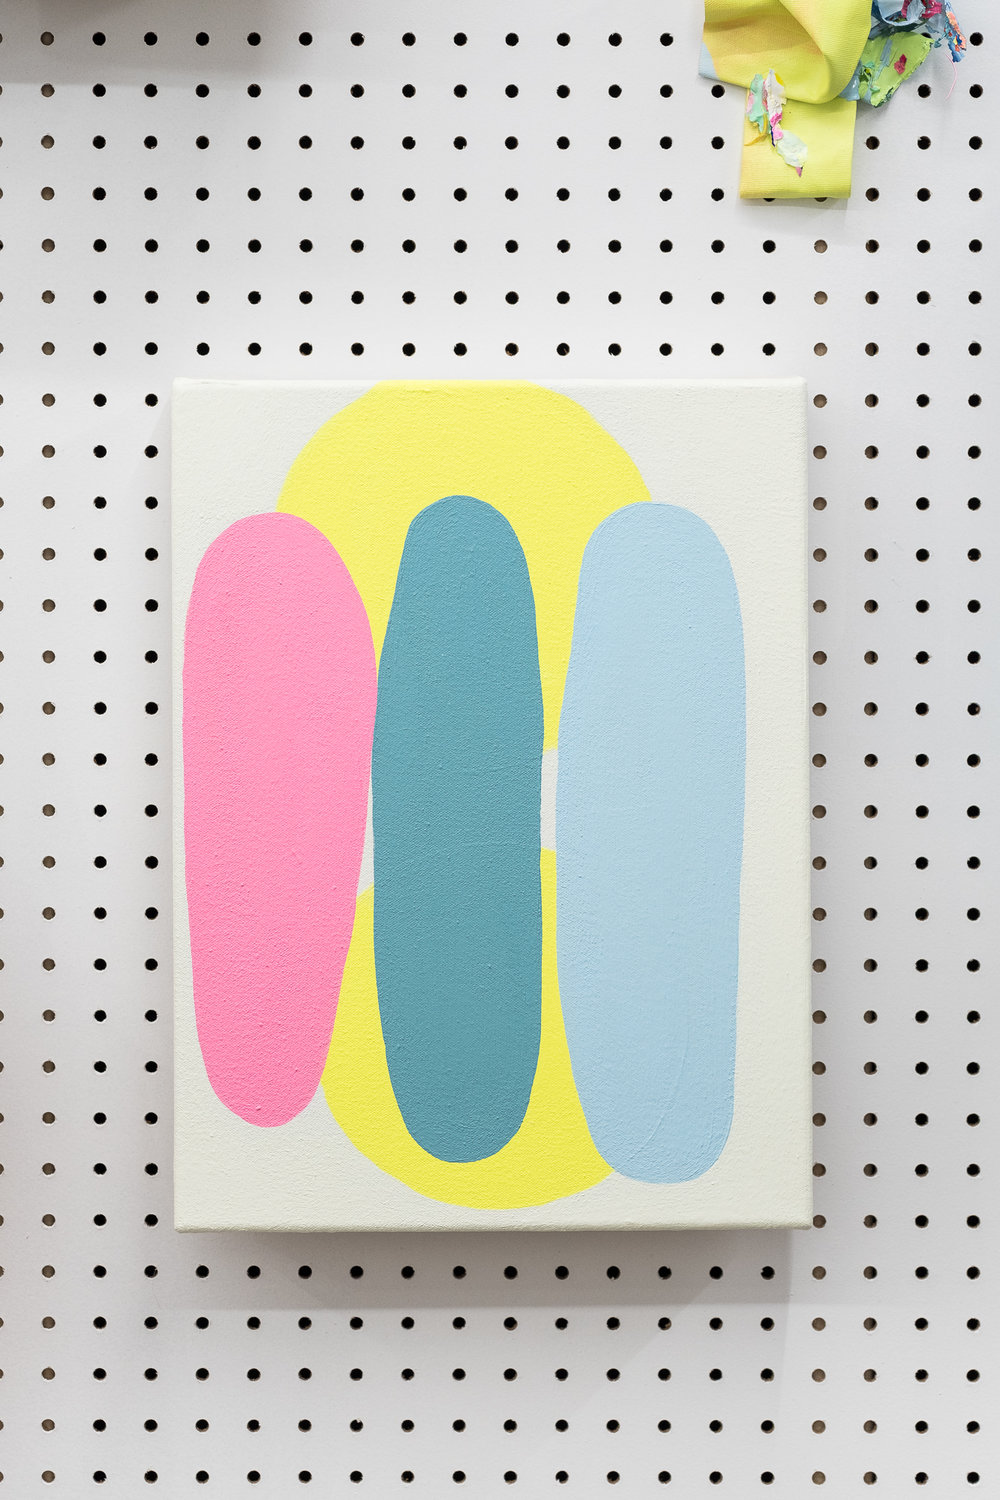 Jeanie Riddle. Records on Vinyl, 2018. 17 x 11 in. Acrylic on canvas. [Photo by Morgane Clément-Gagnon]